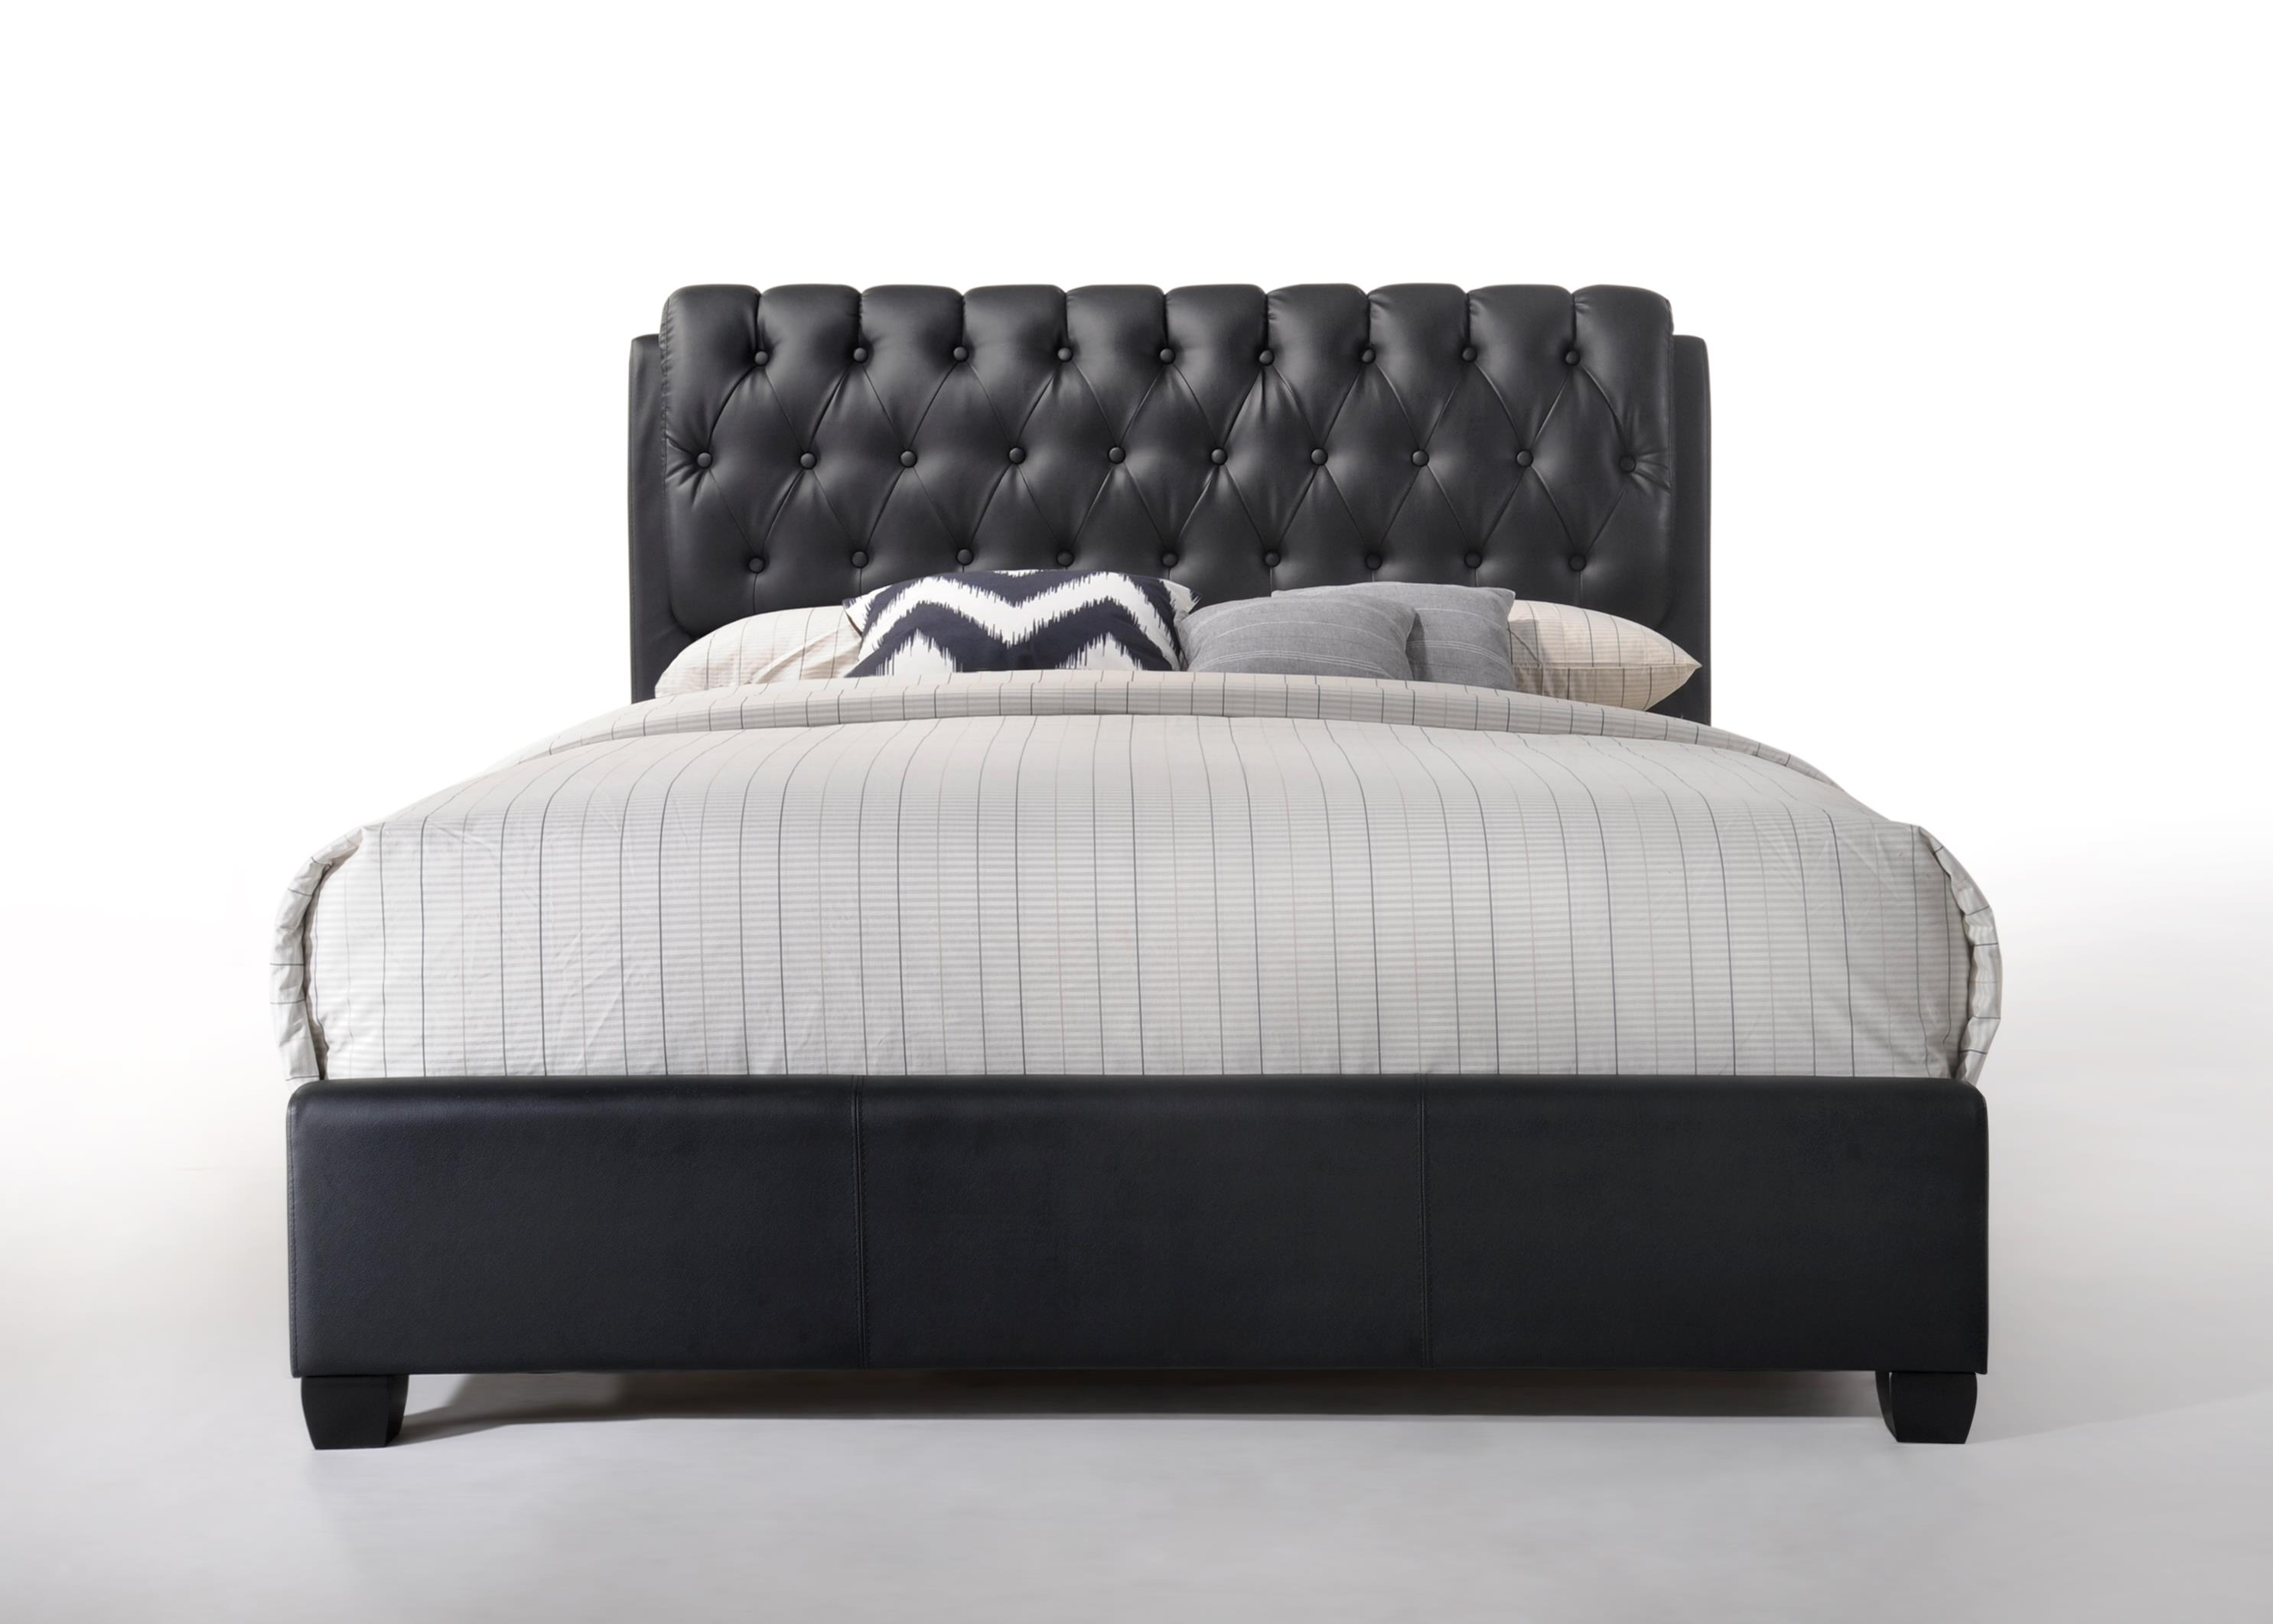 Leather Bed Frame Acme Furniture Ireland Queen Faux Leather Bed With Tufted Headboard Black